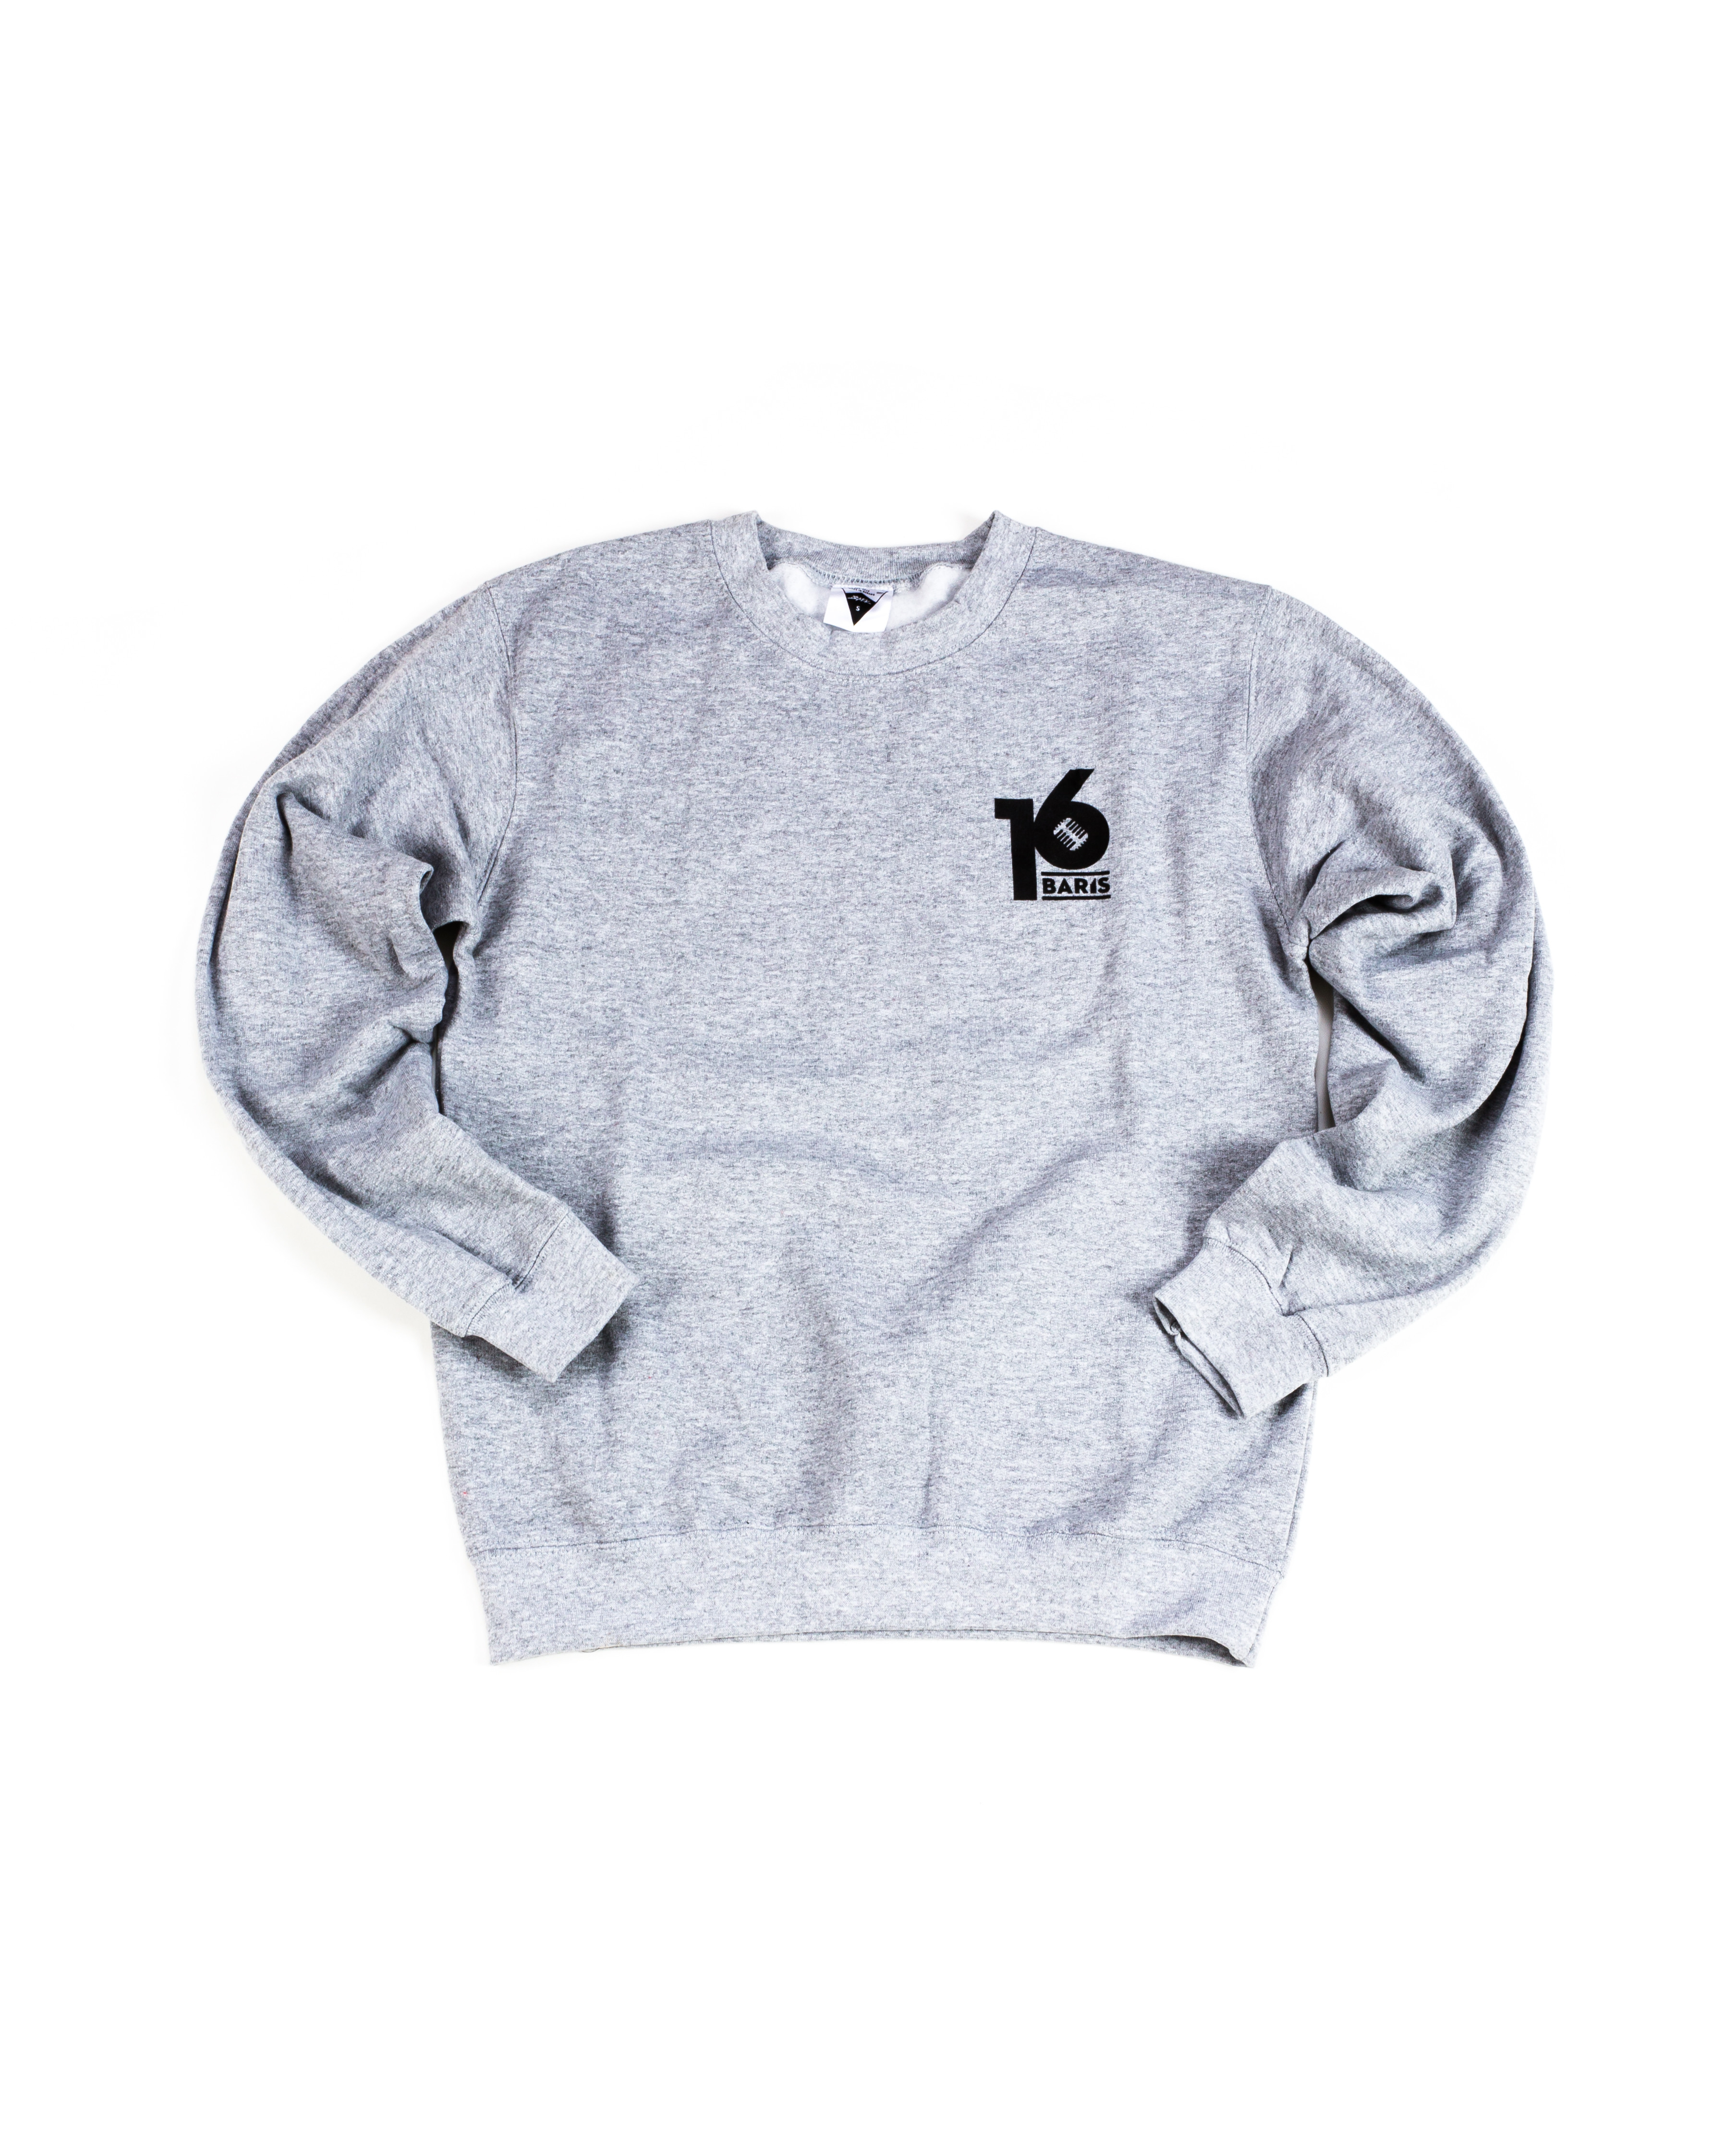 16 BARIS SWEATER - GREY